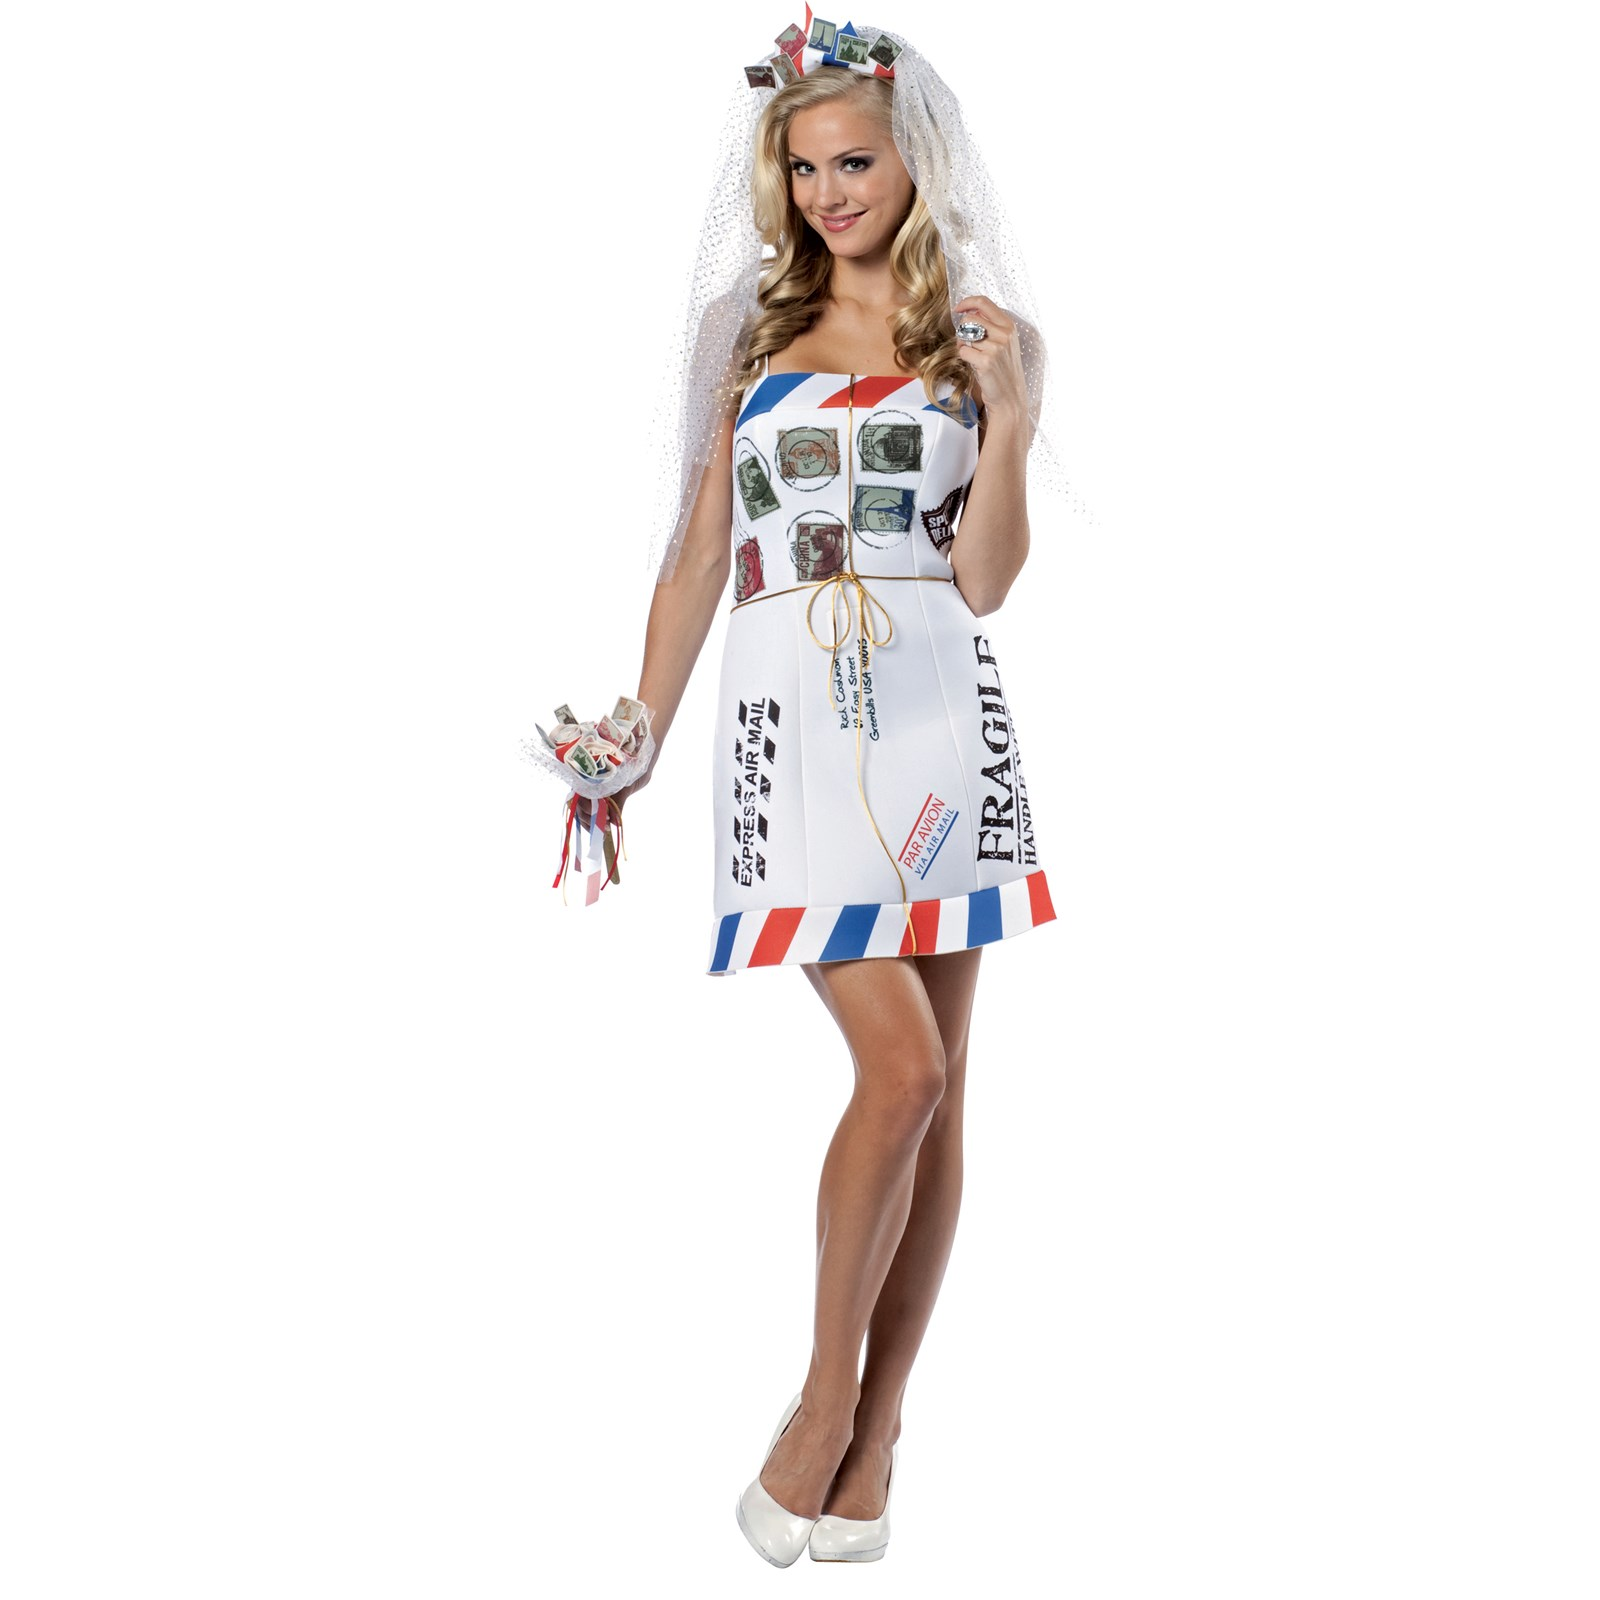 Mail order bride adult costume buycostumes mail order bride adult costume sciox Choice Image